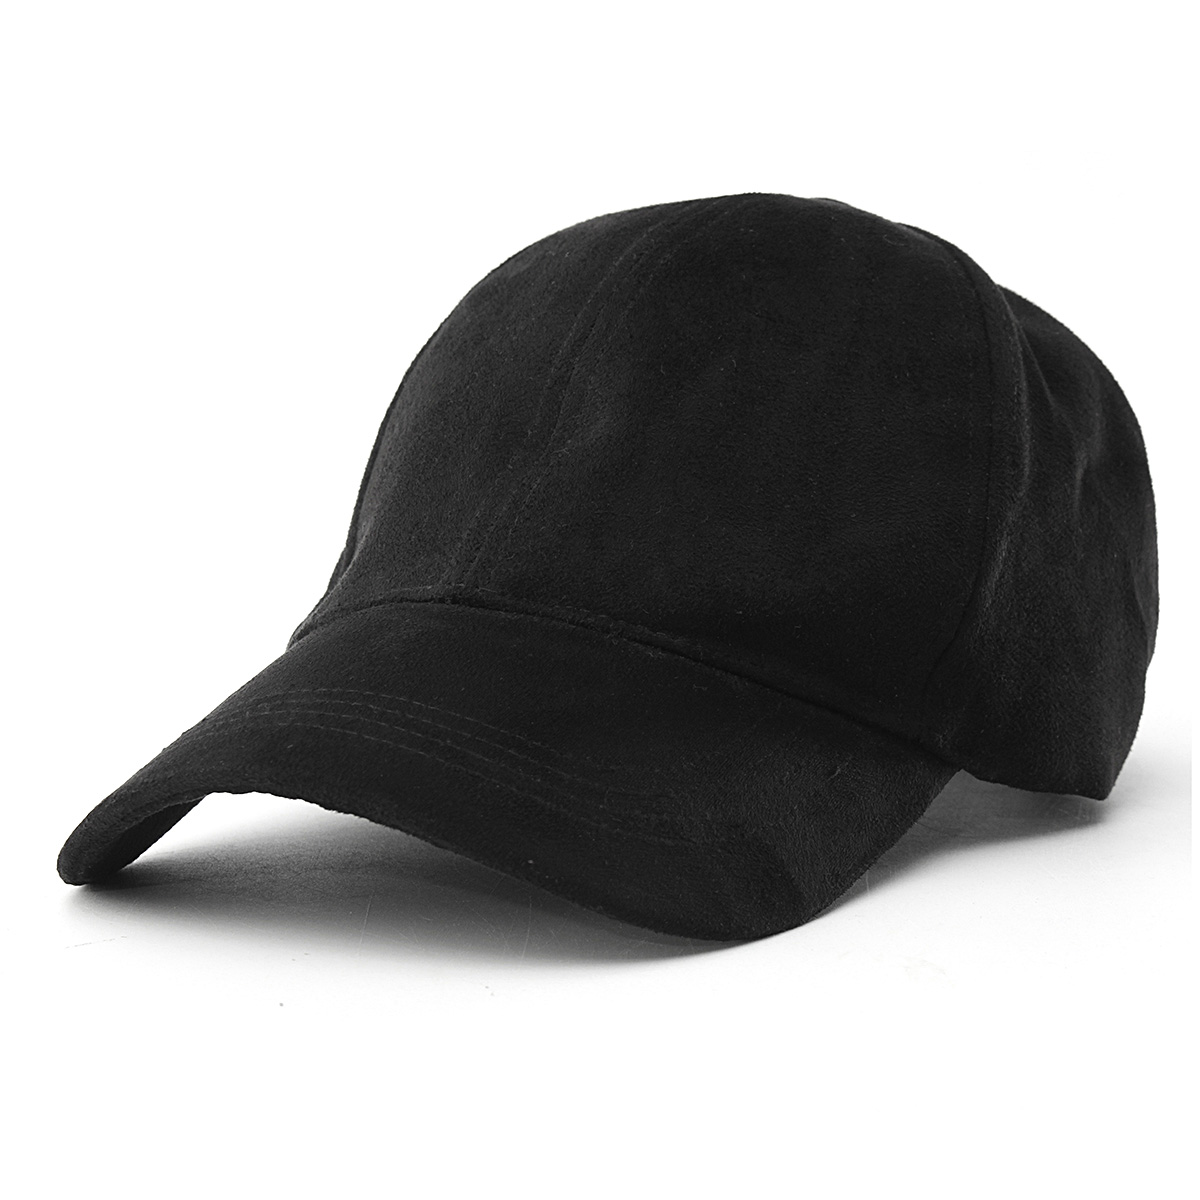 Unisex Faux Leather Suede Fitted Baseball Hat Adjustable Plain Sports Cap Visors